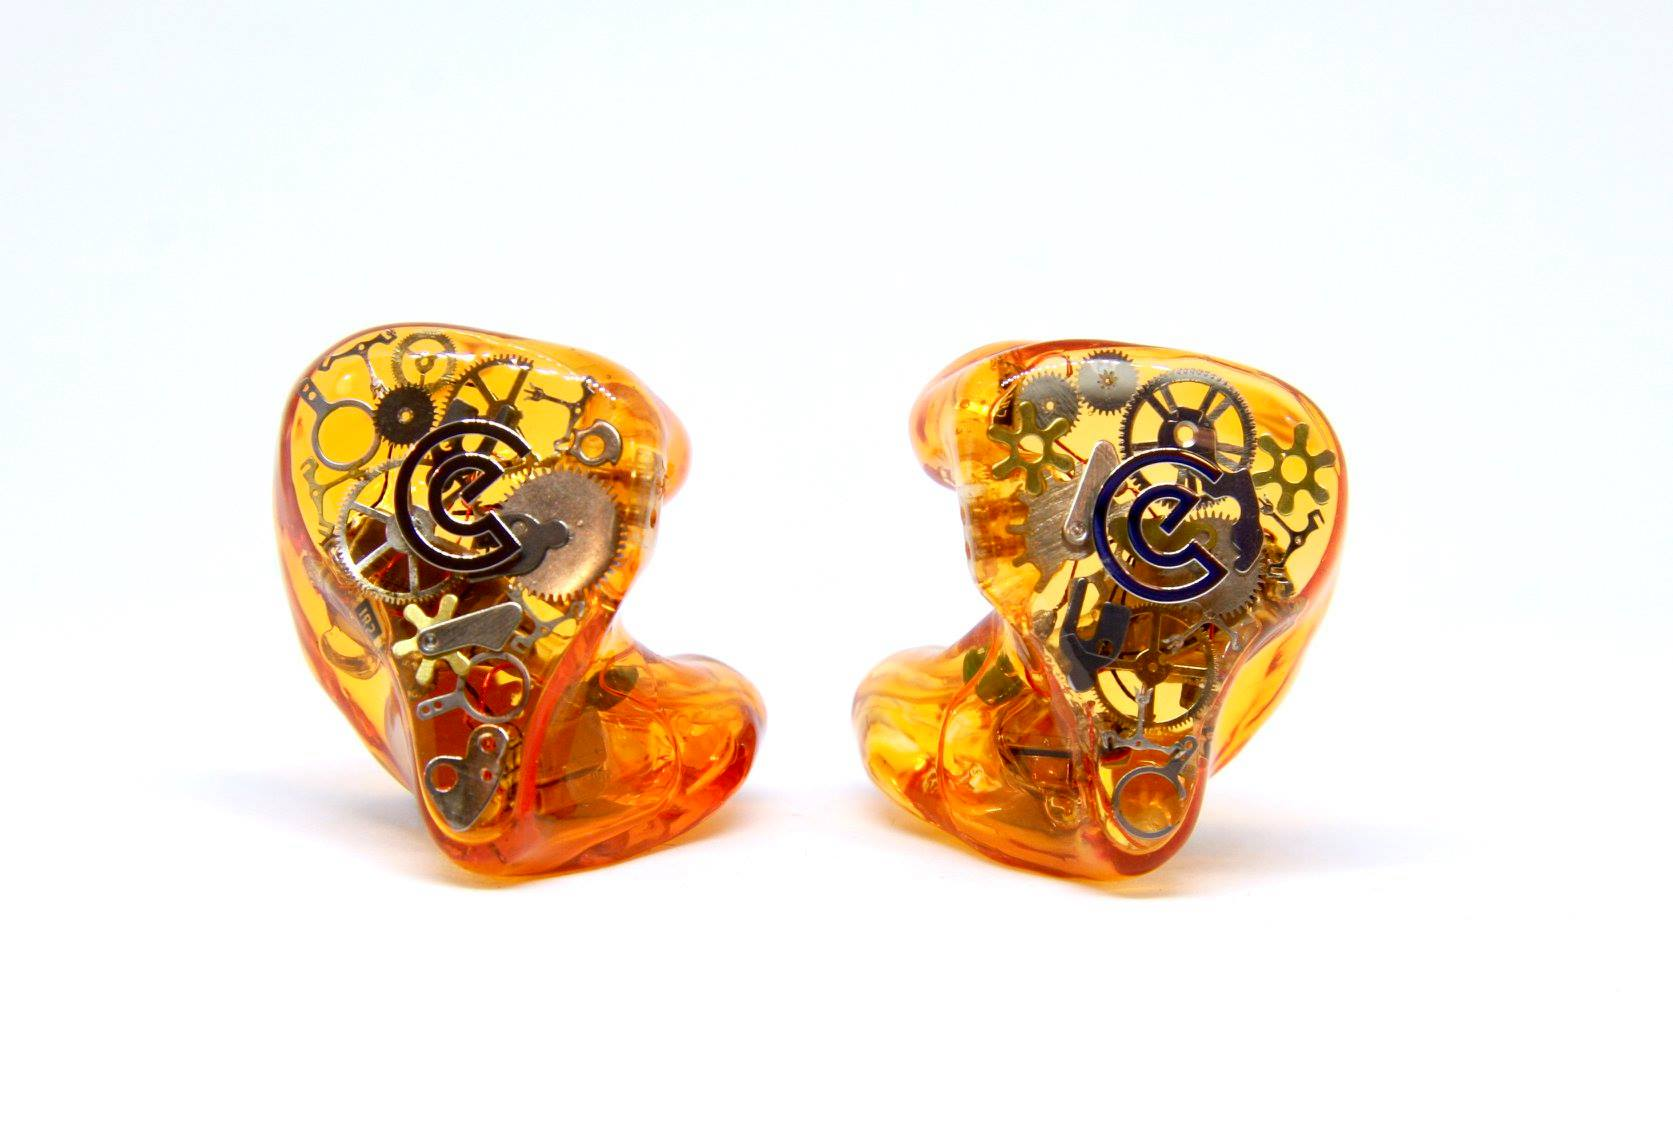 Faceplate: 'Time machine' faceplate and metallic Craft Ears logo, color: Orange Transparent